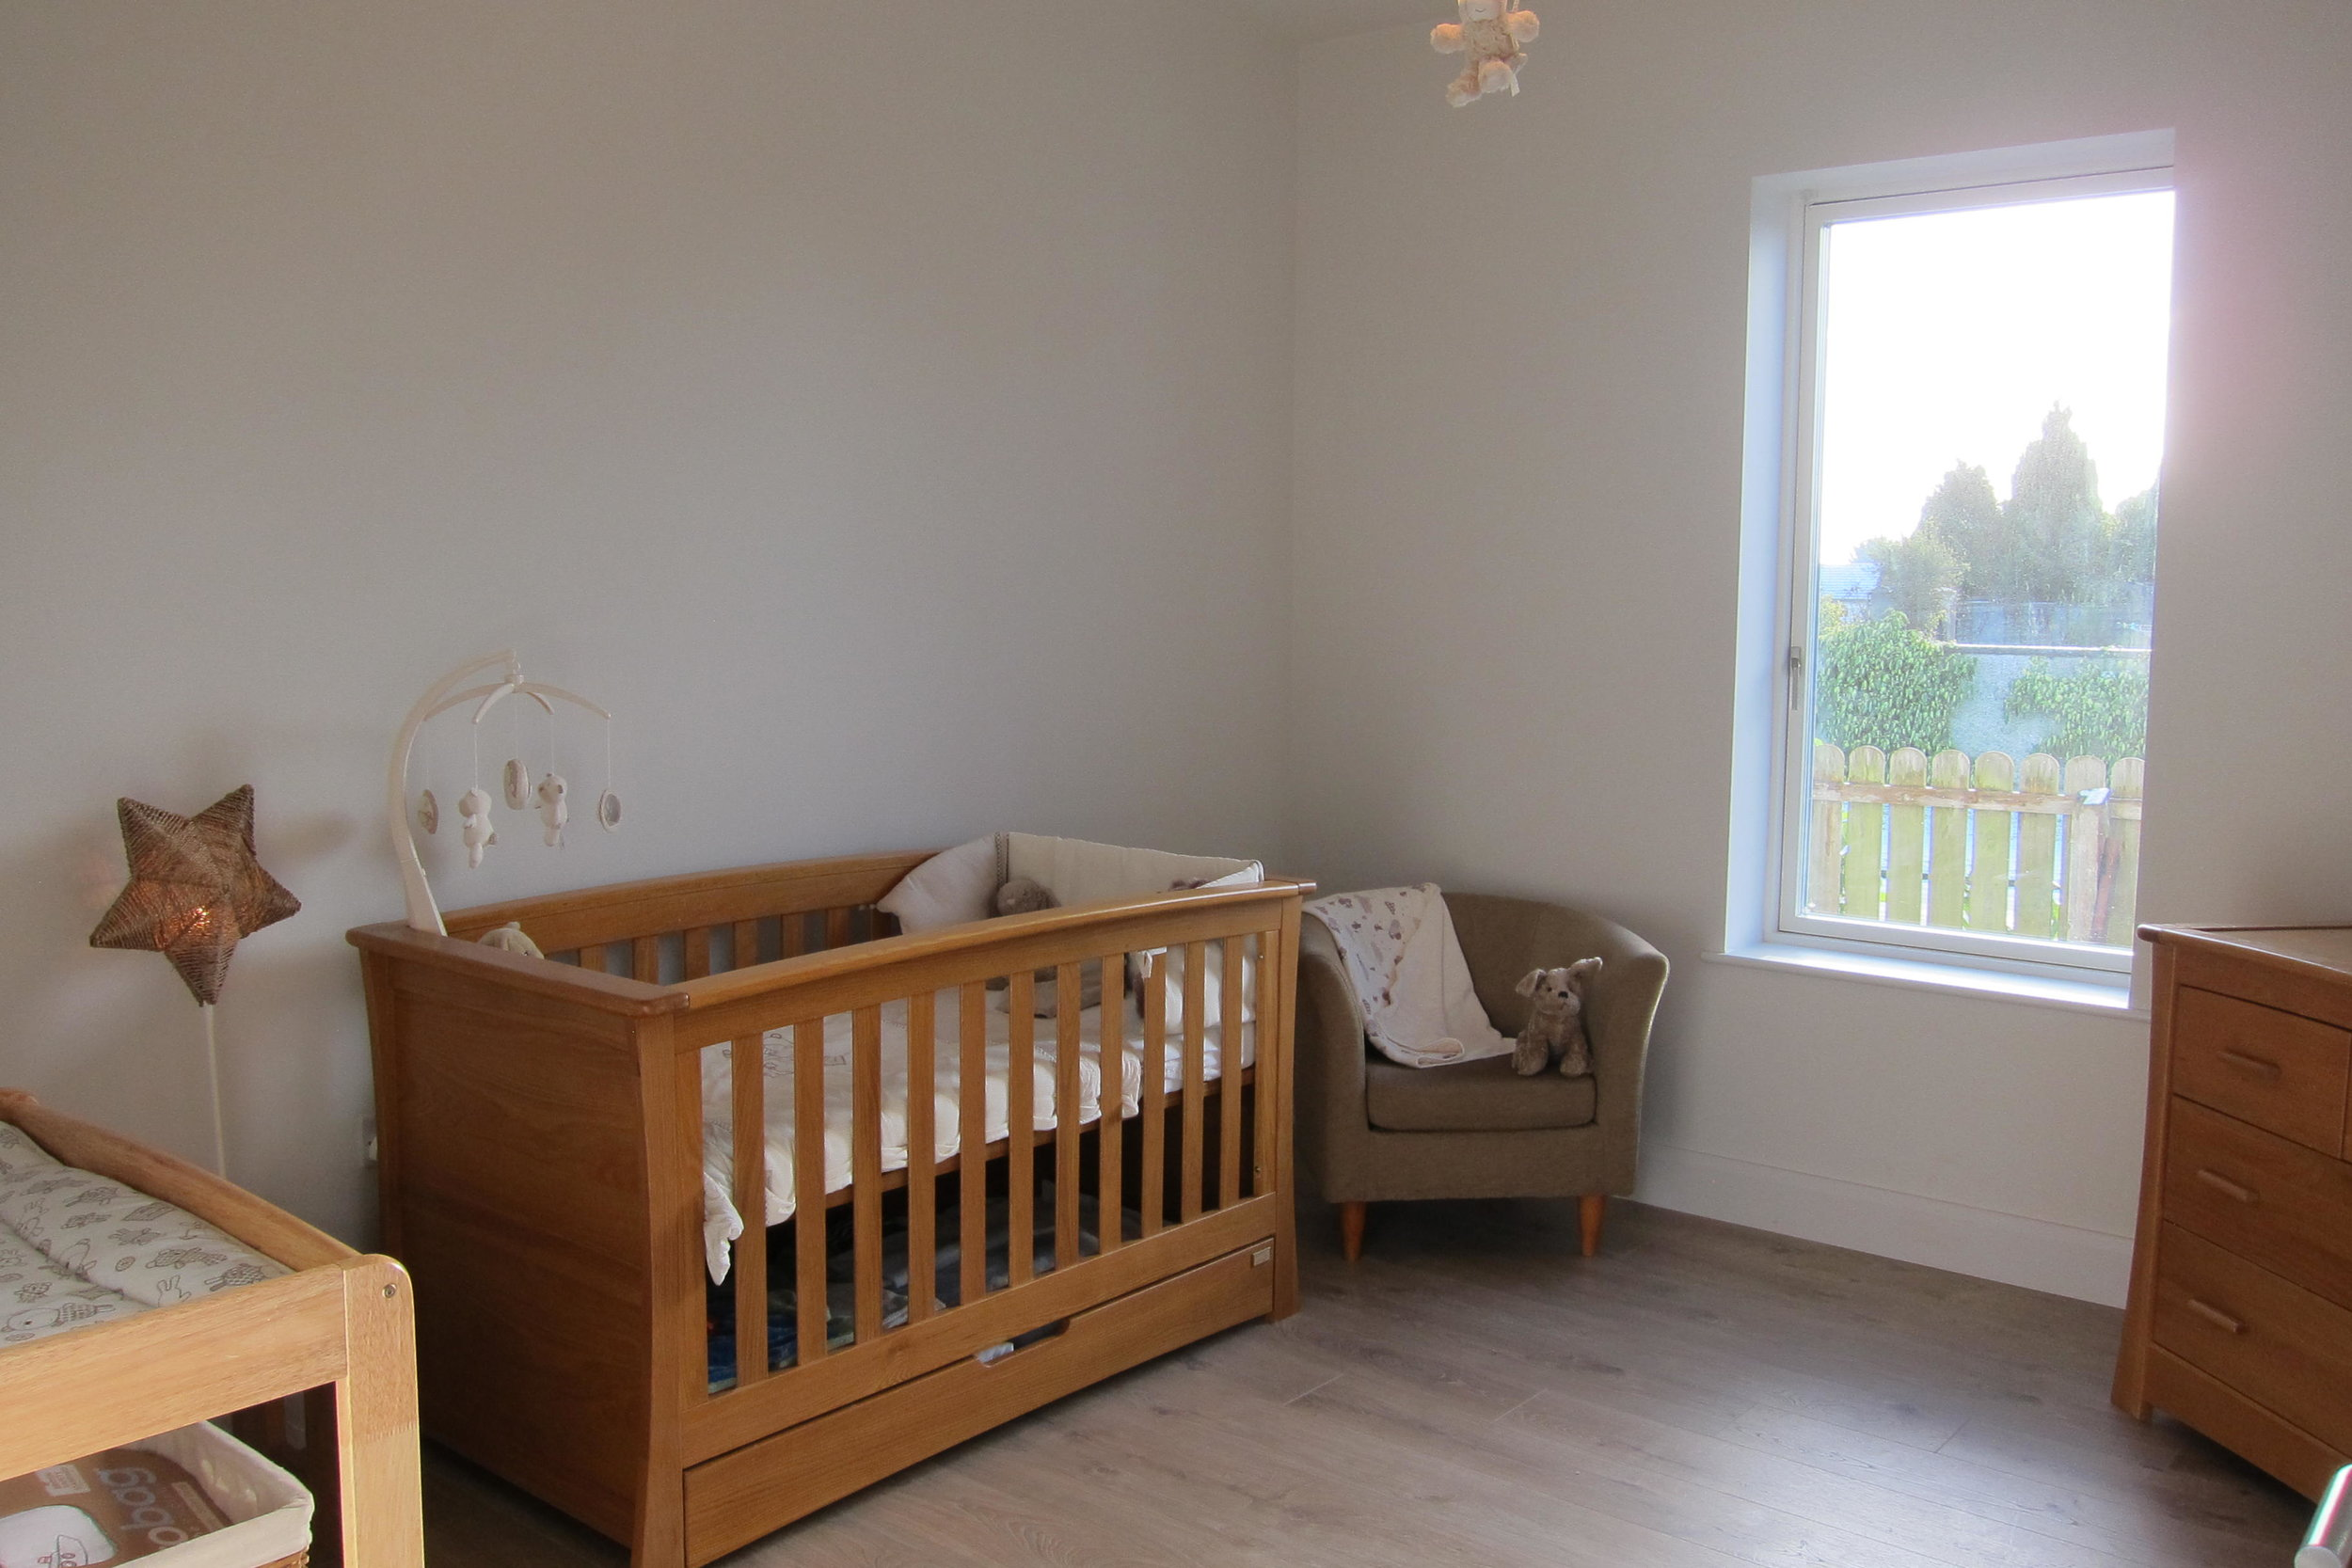 TX3 RTI10 Moate AFTER Nursery.JPG